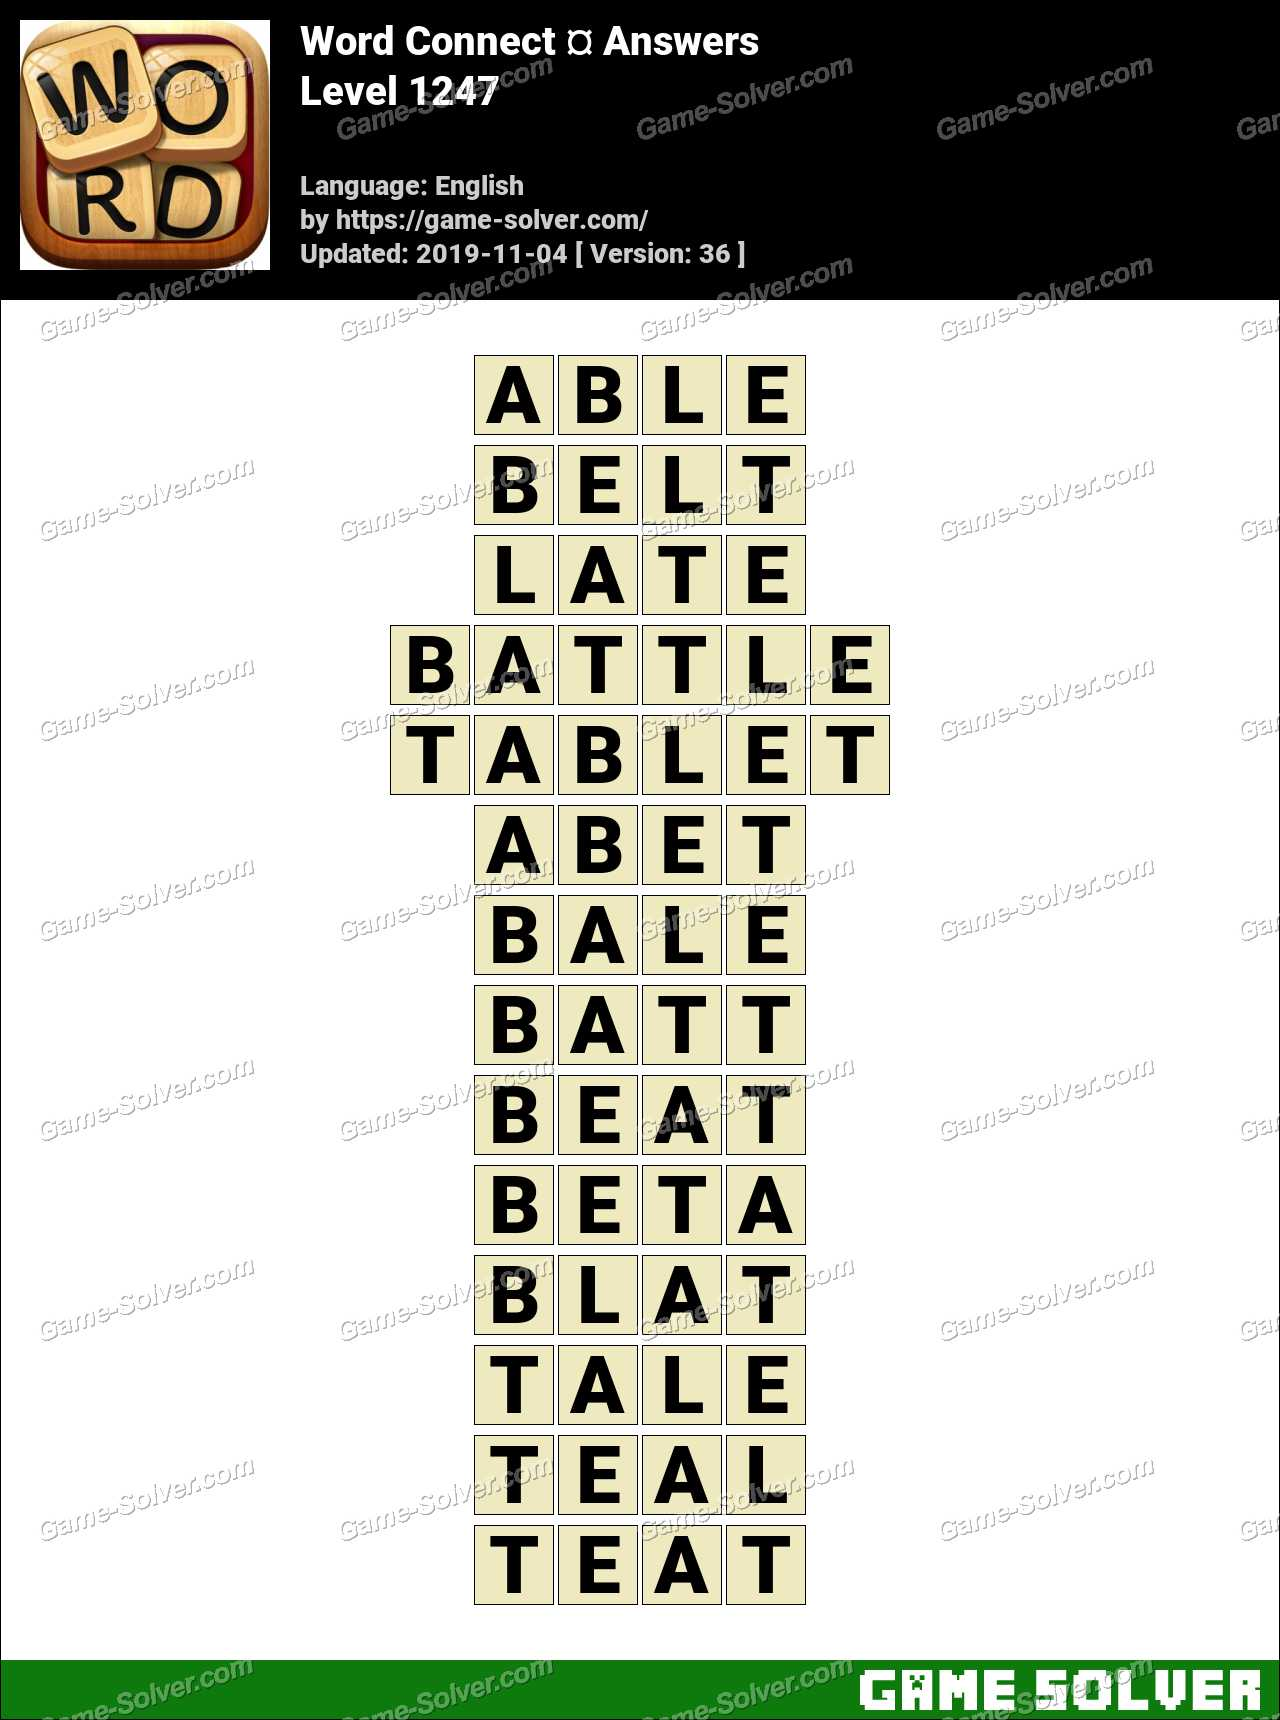 Word Connect Level 1247 Answers